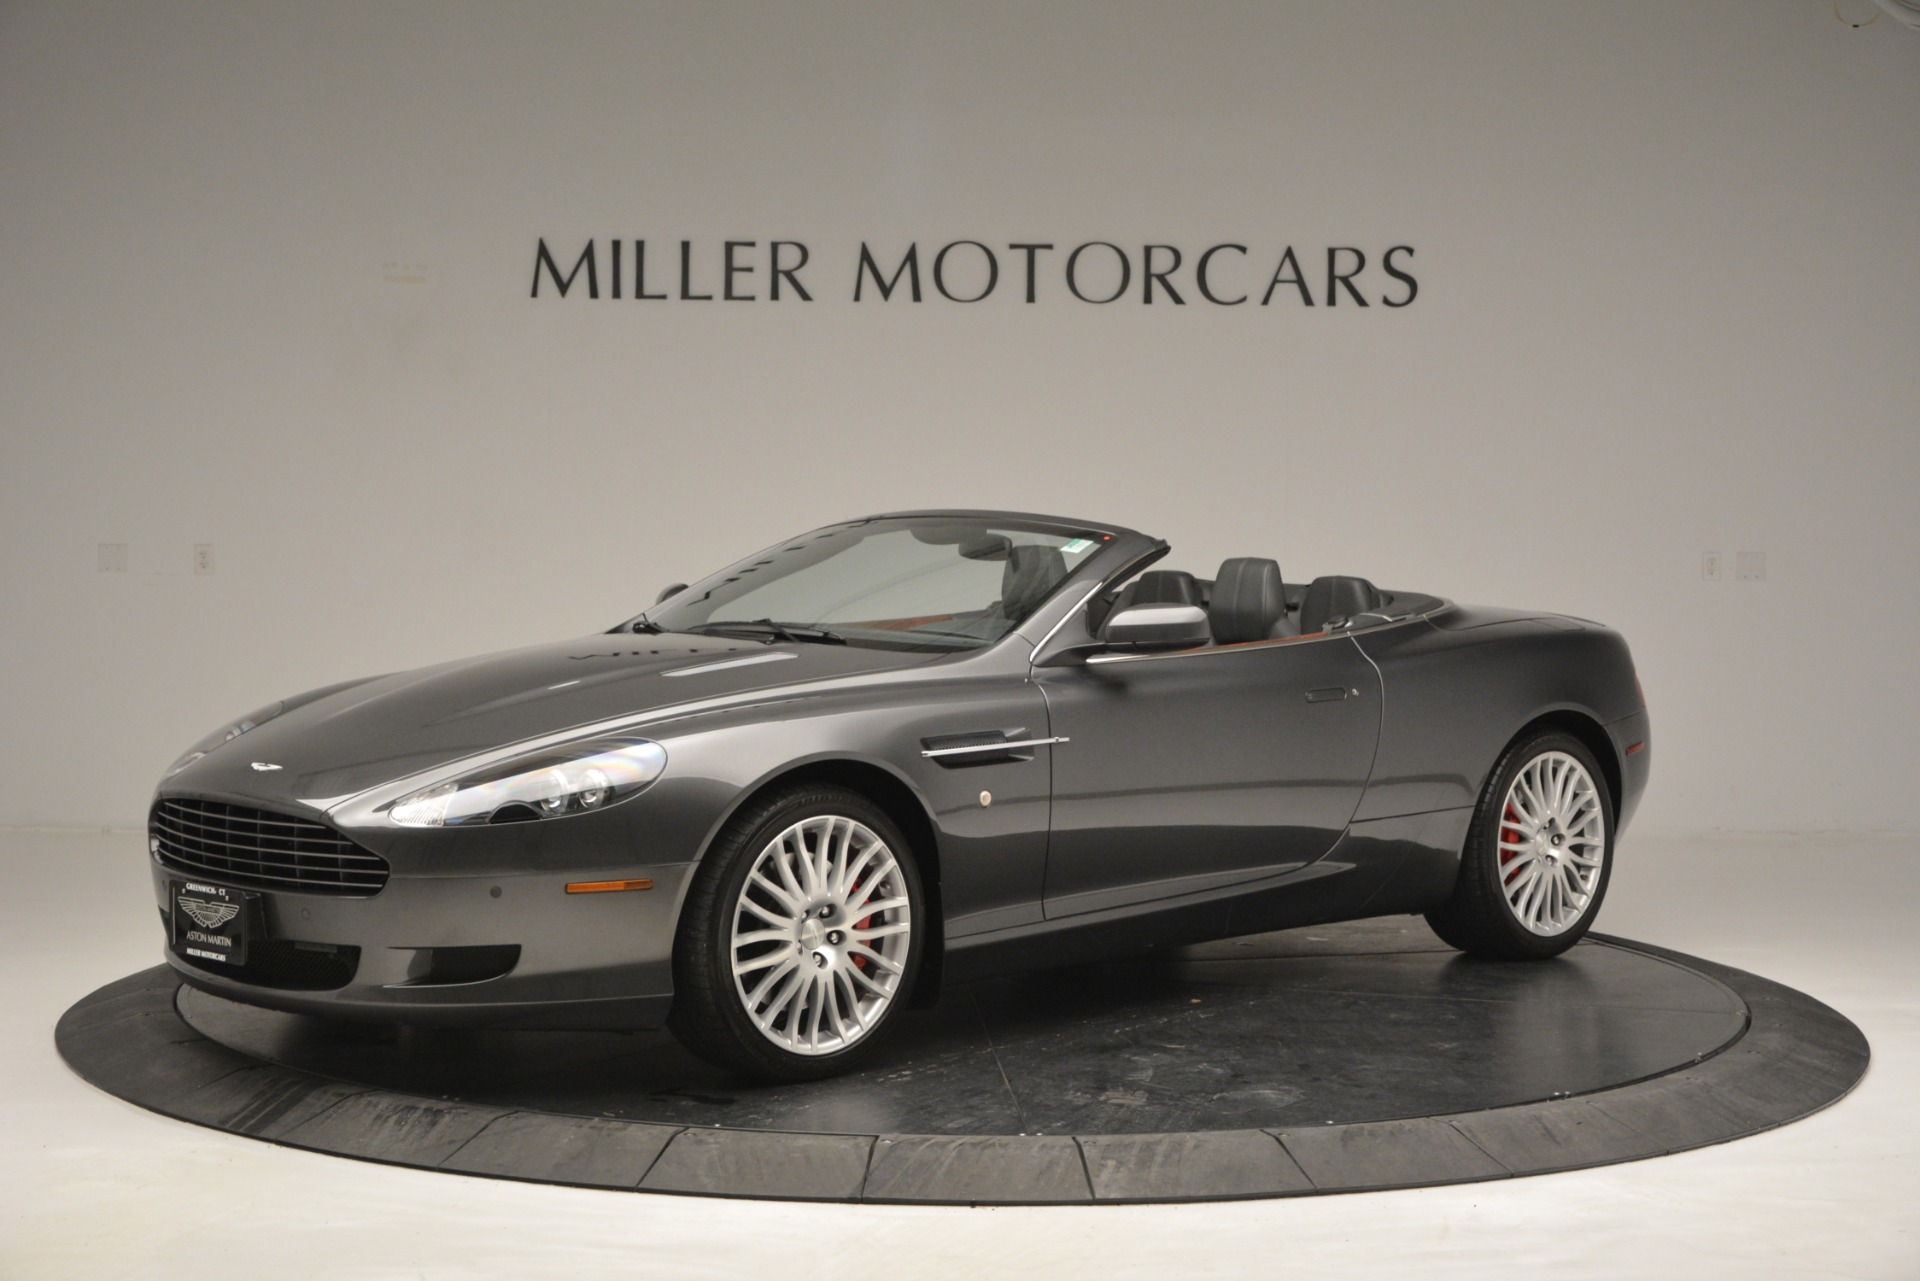 Used 2009 Aston Martin DB9 Convertible for sale Sold at Bentley Greenwich in Greenwich CT 06830 1